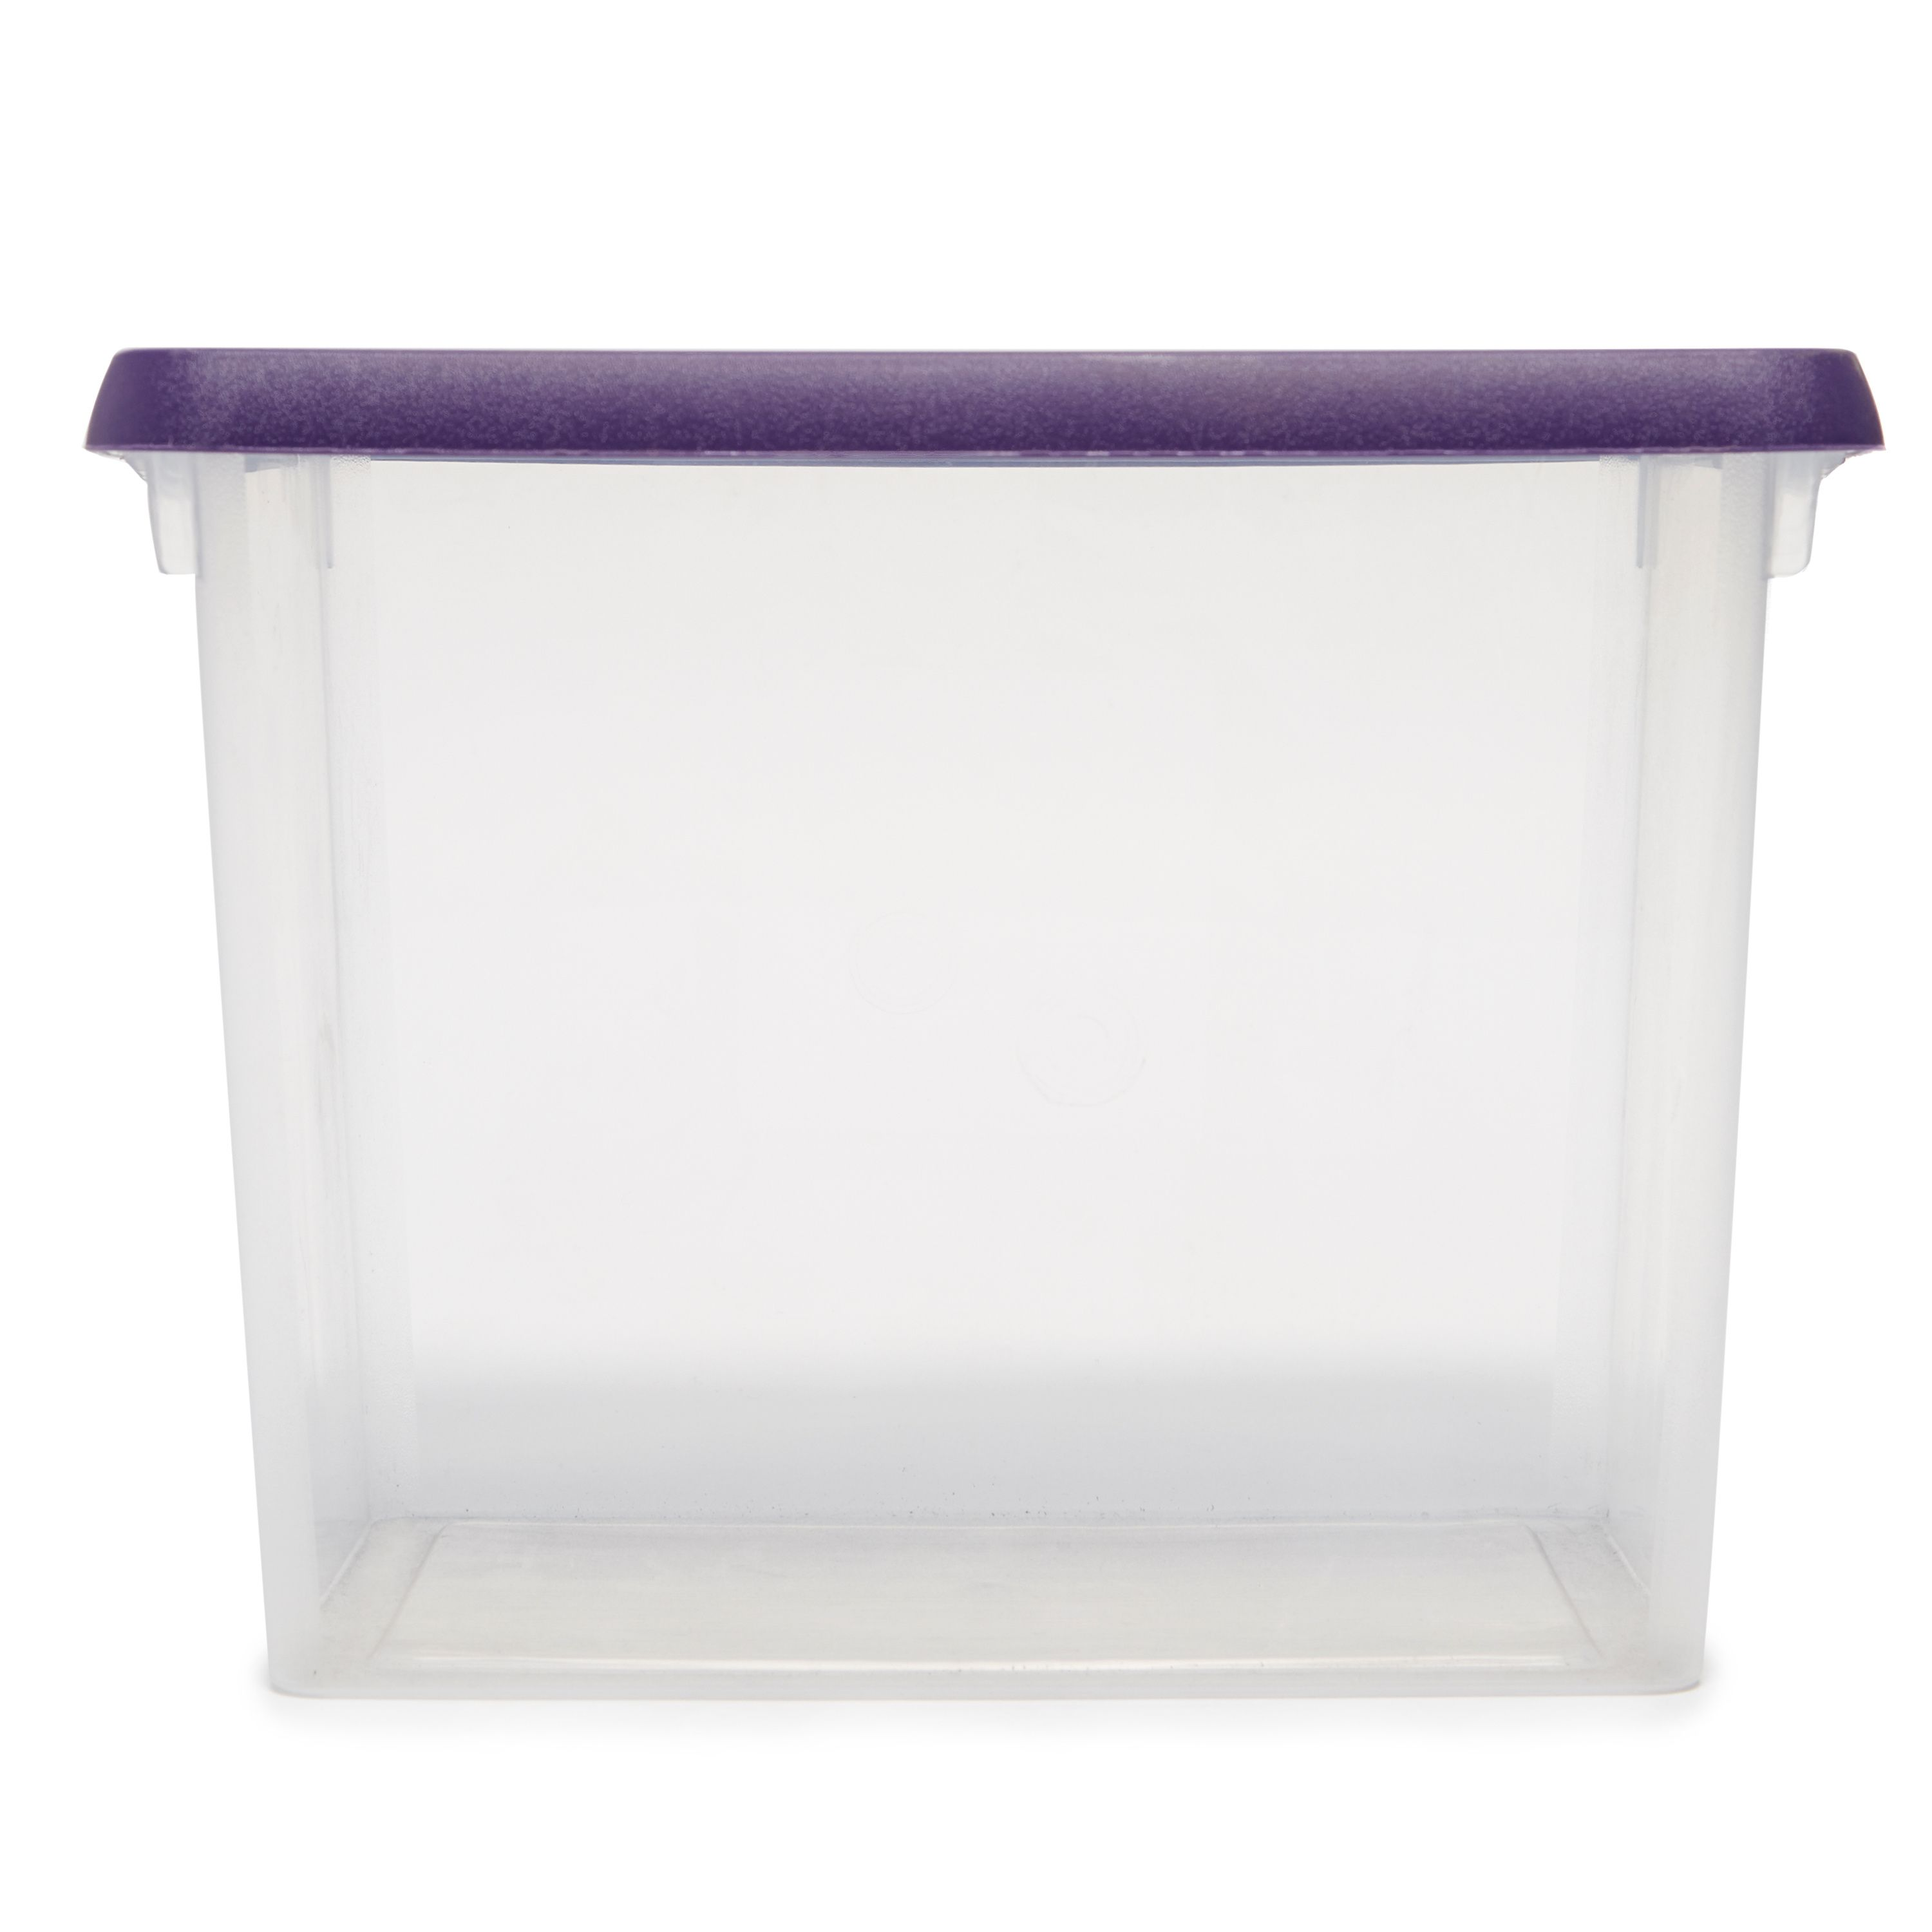 WHAM Whambox Storage Box 6.7L